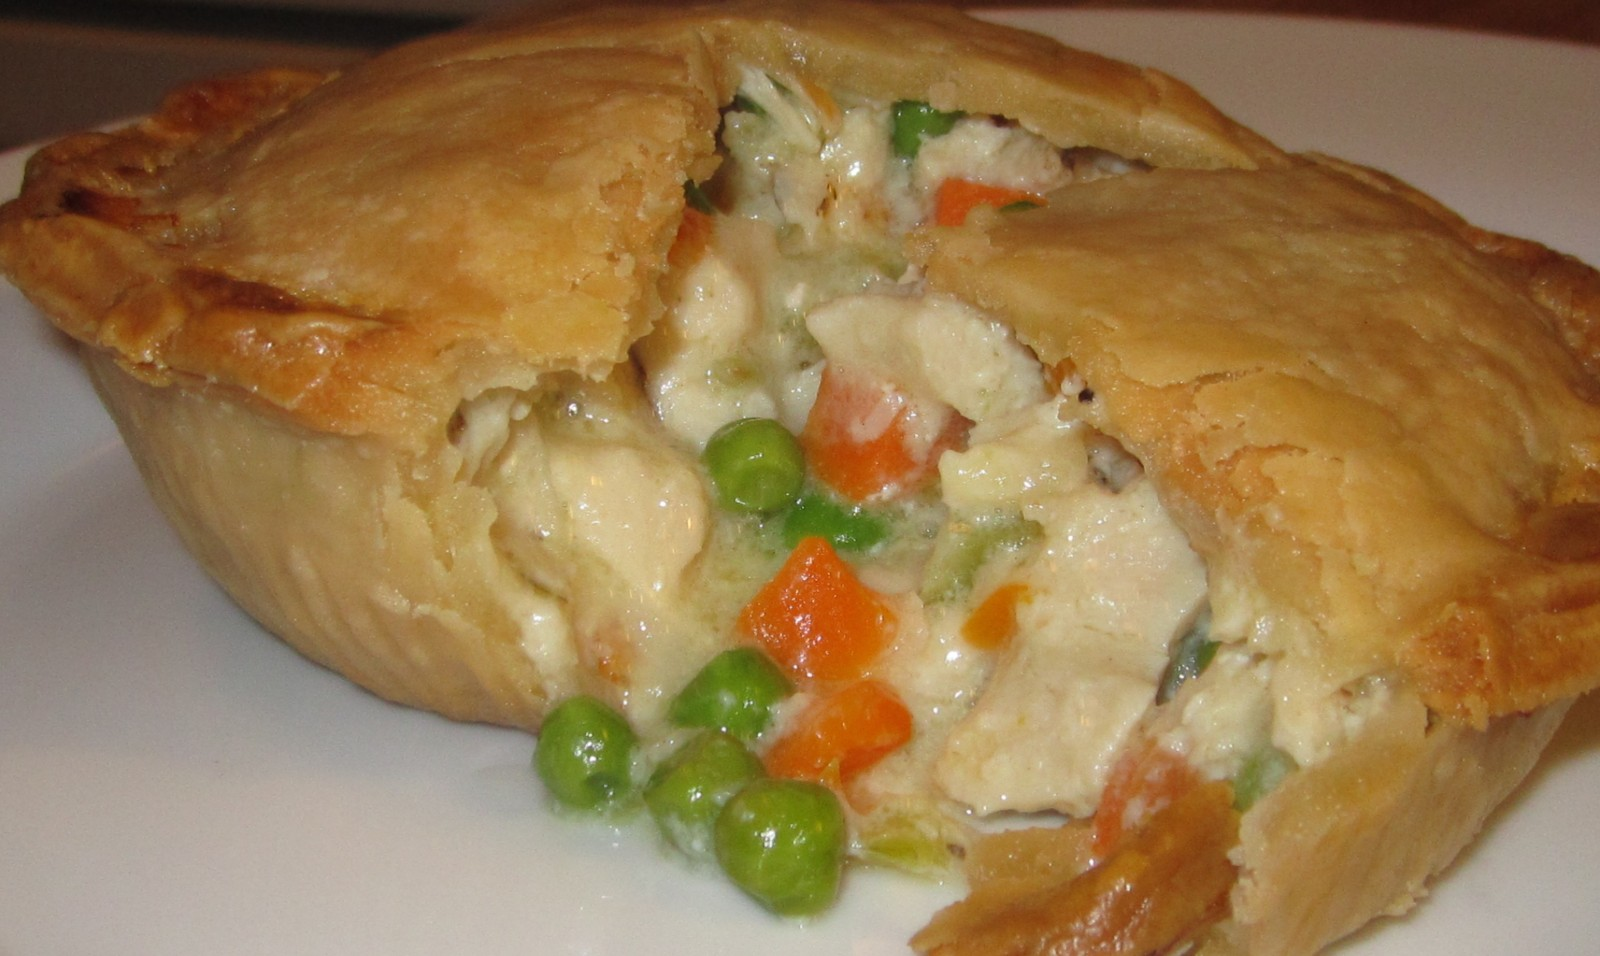 The chicken pot pie from McDuffies Bakery. (Emeri Krawczyk/Special to The News)